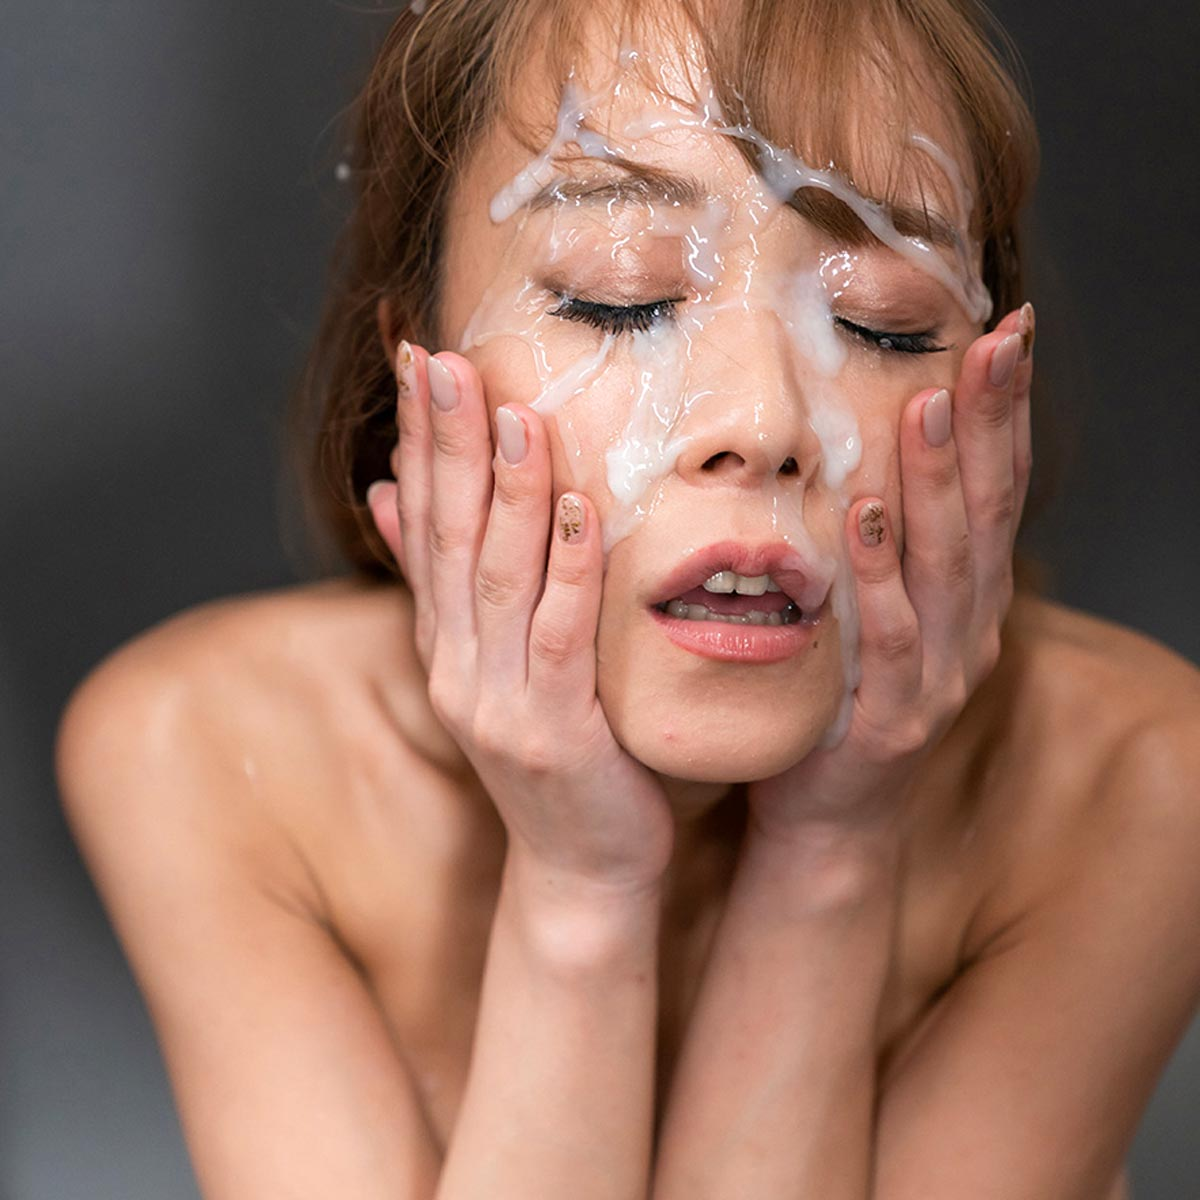 "Nanako Nanahara SpermMania video ""Nanako Nanahara's Sticky Bukkake Facial"". The nude girl is covered with cum on her face. Cumshot Fetish."